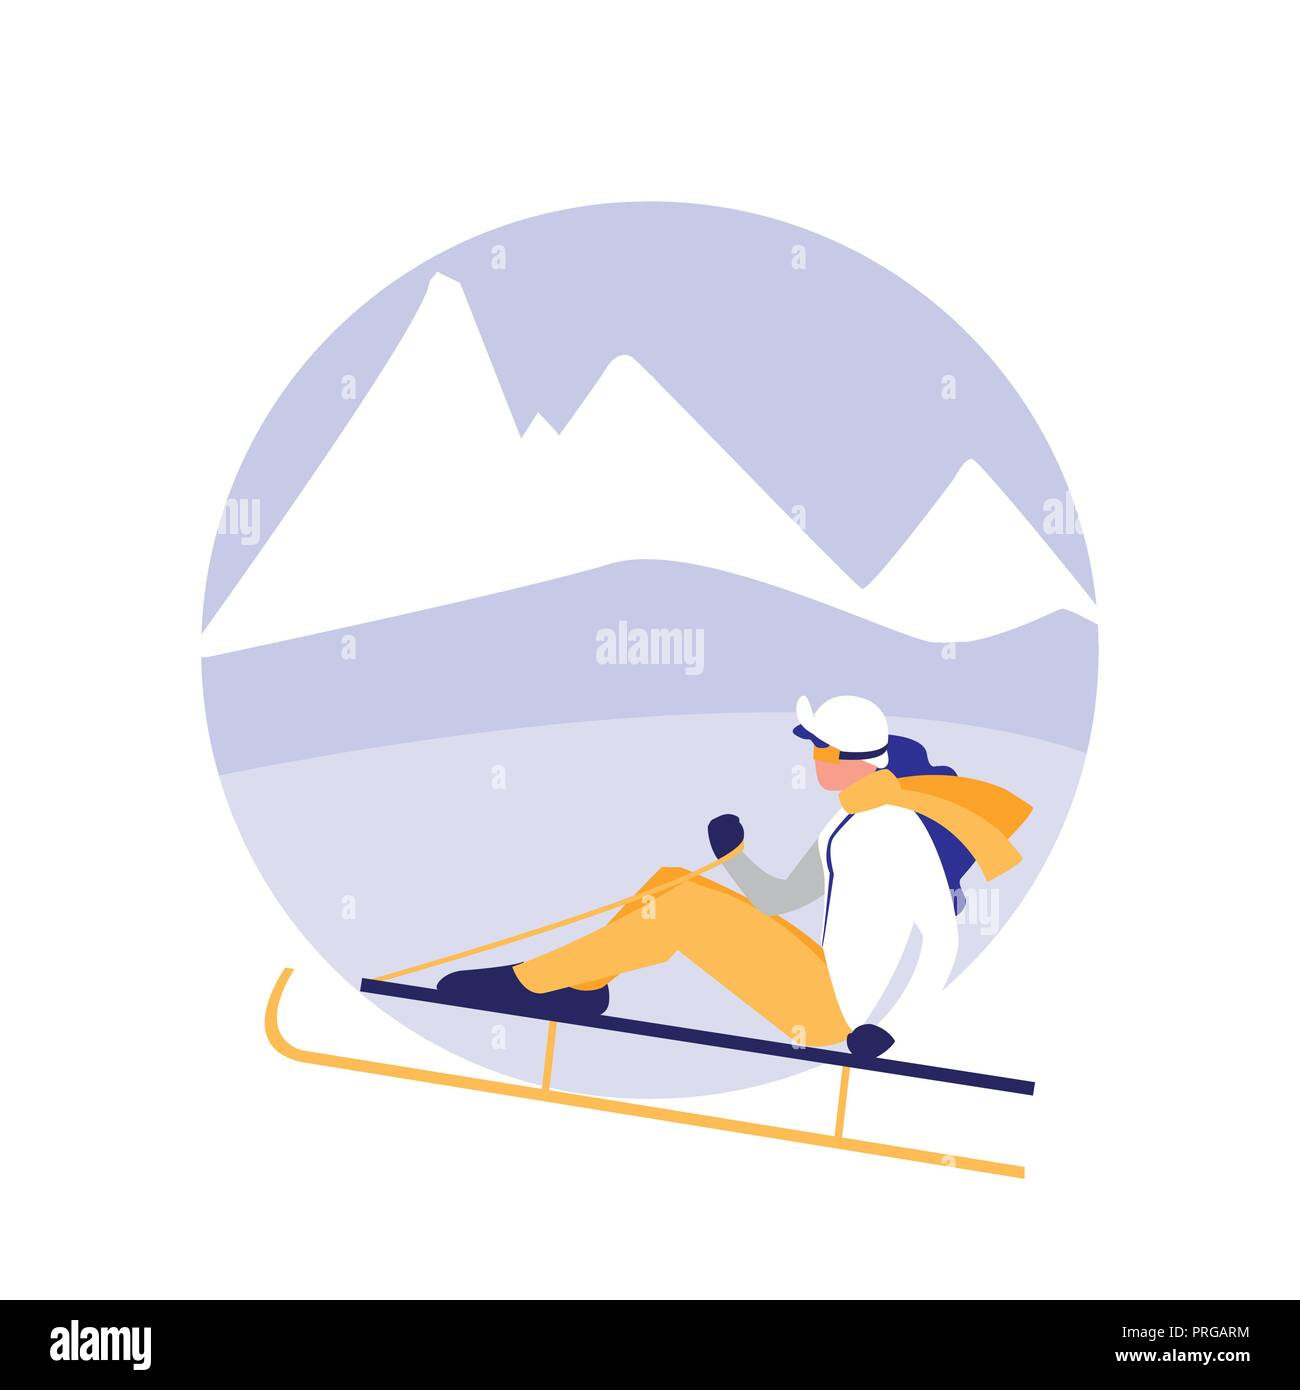 woman practicing skiing on ice avatar character vector illustration design - Stock Image